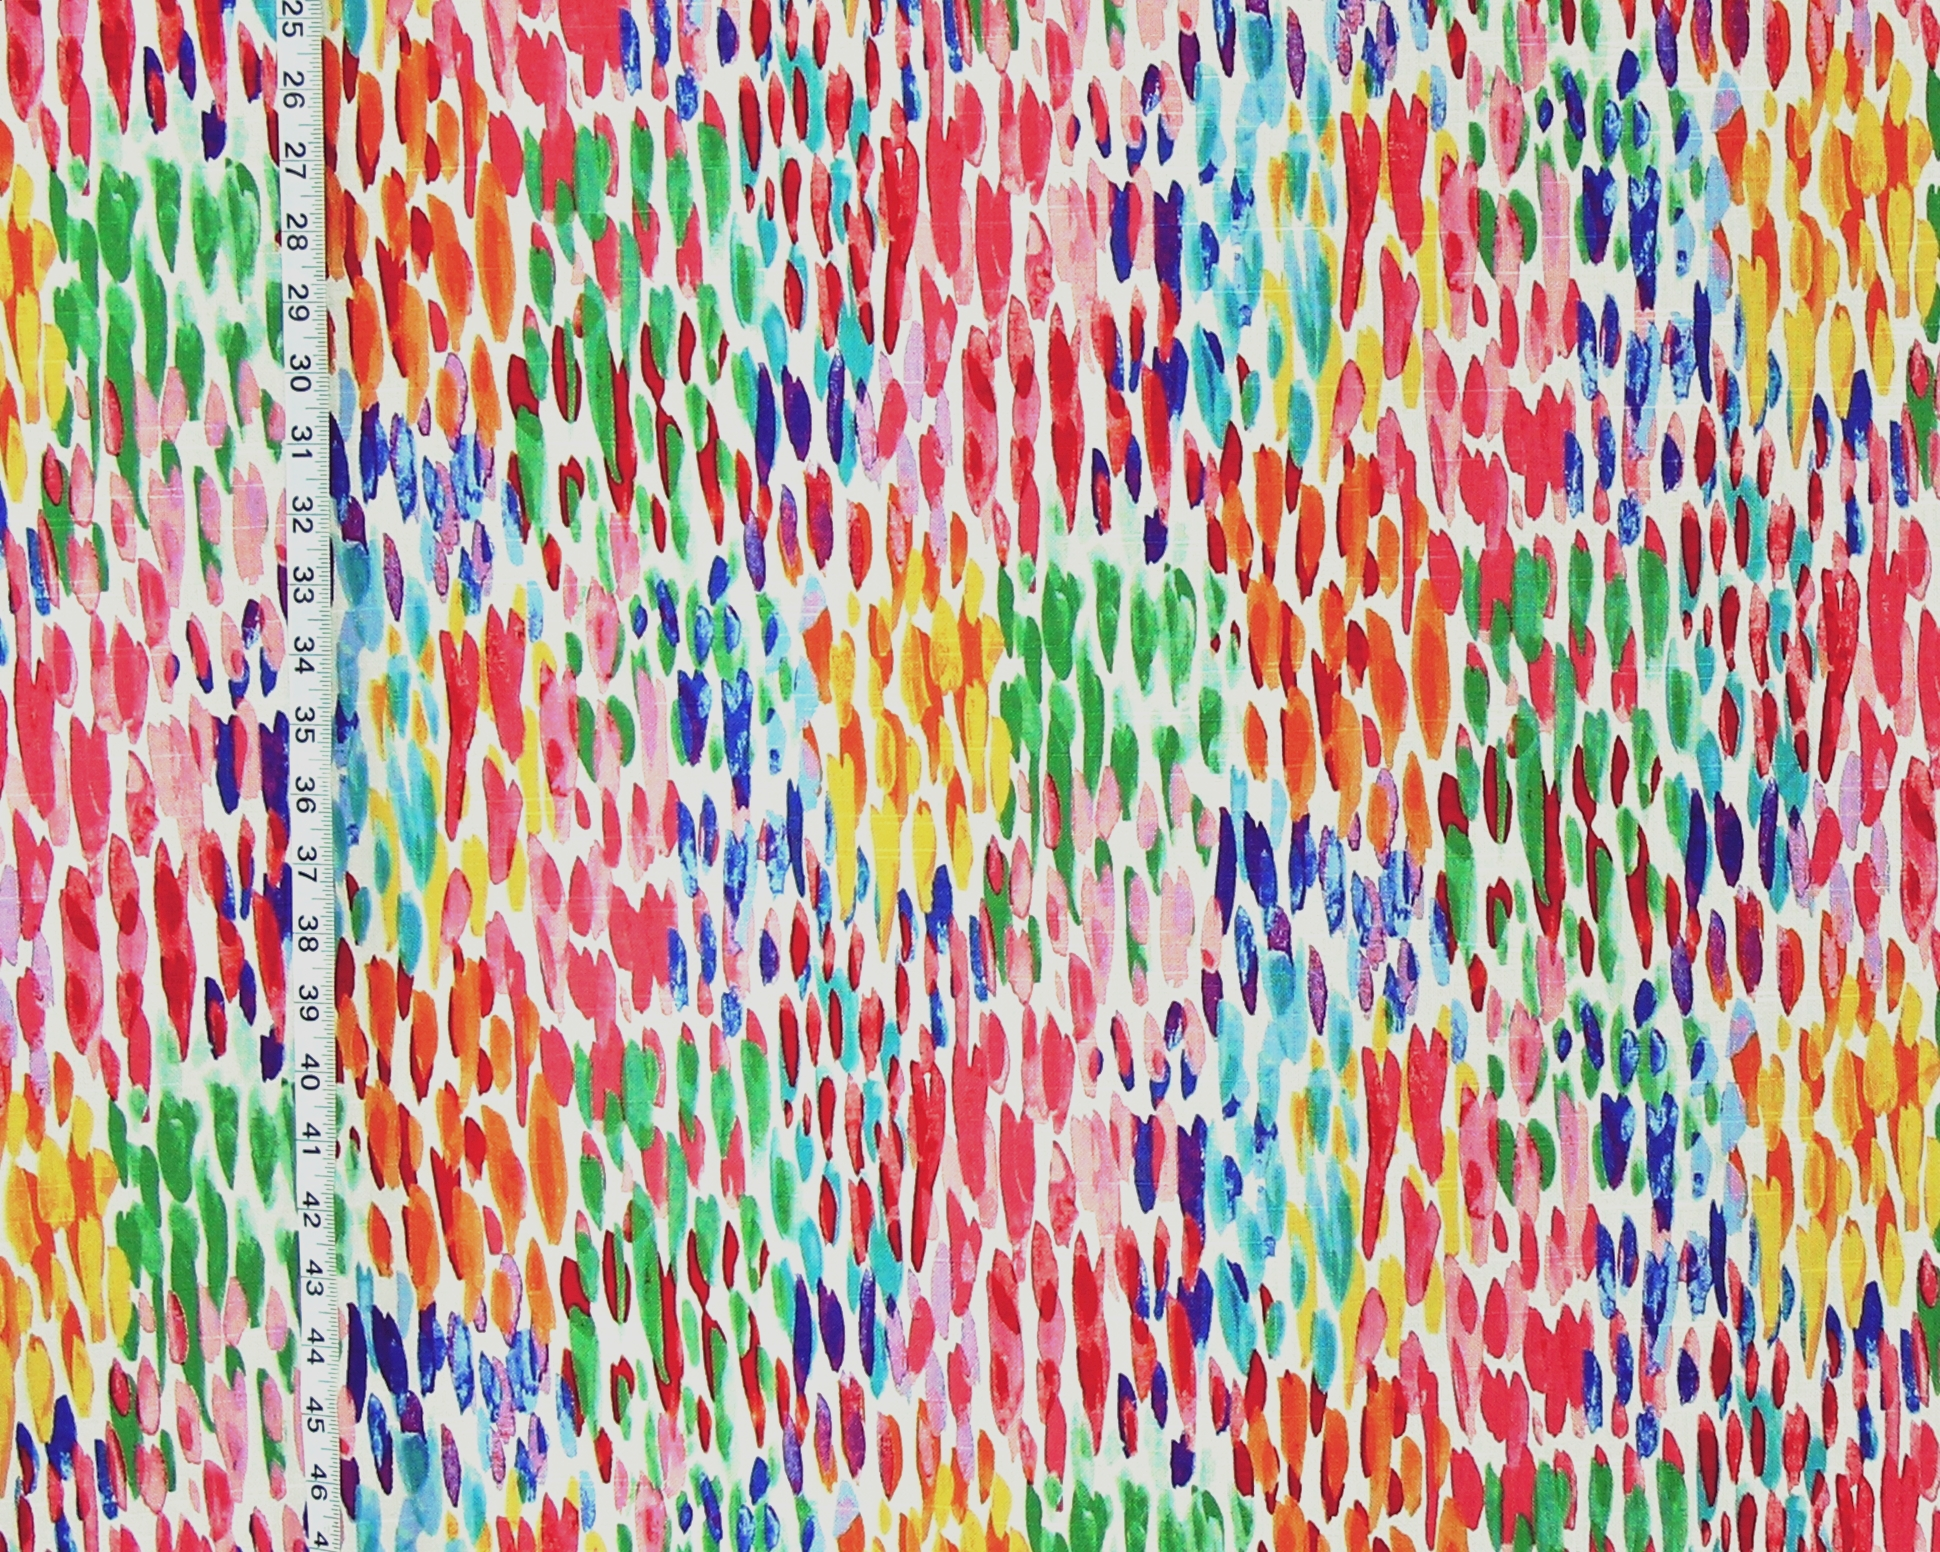 WATERCOLOR PAINT BRUSH FABRIC